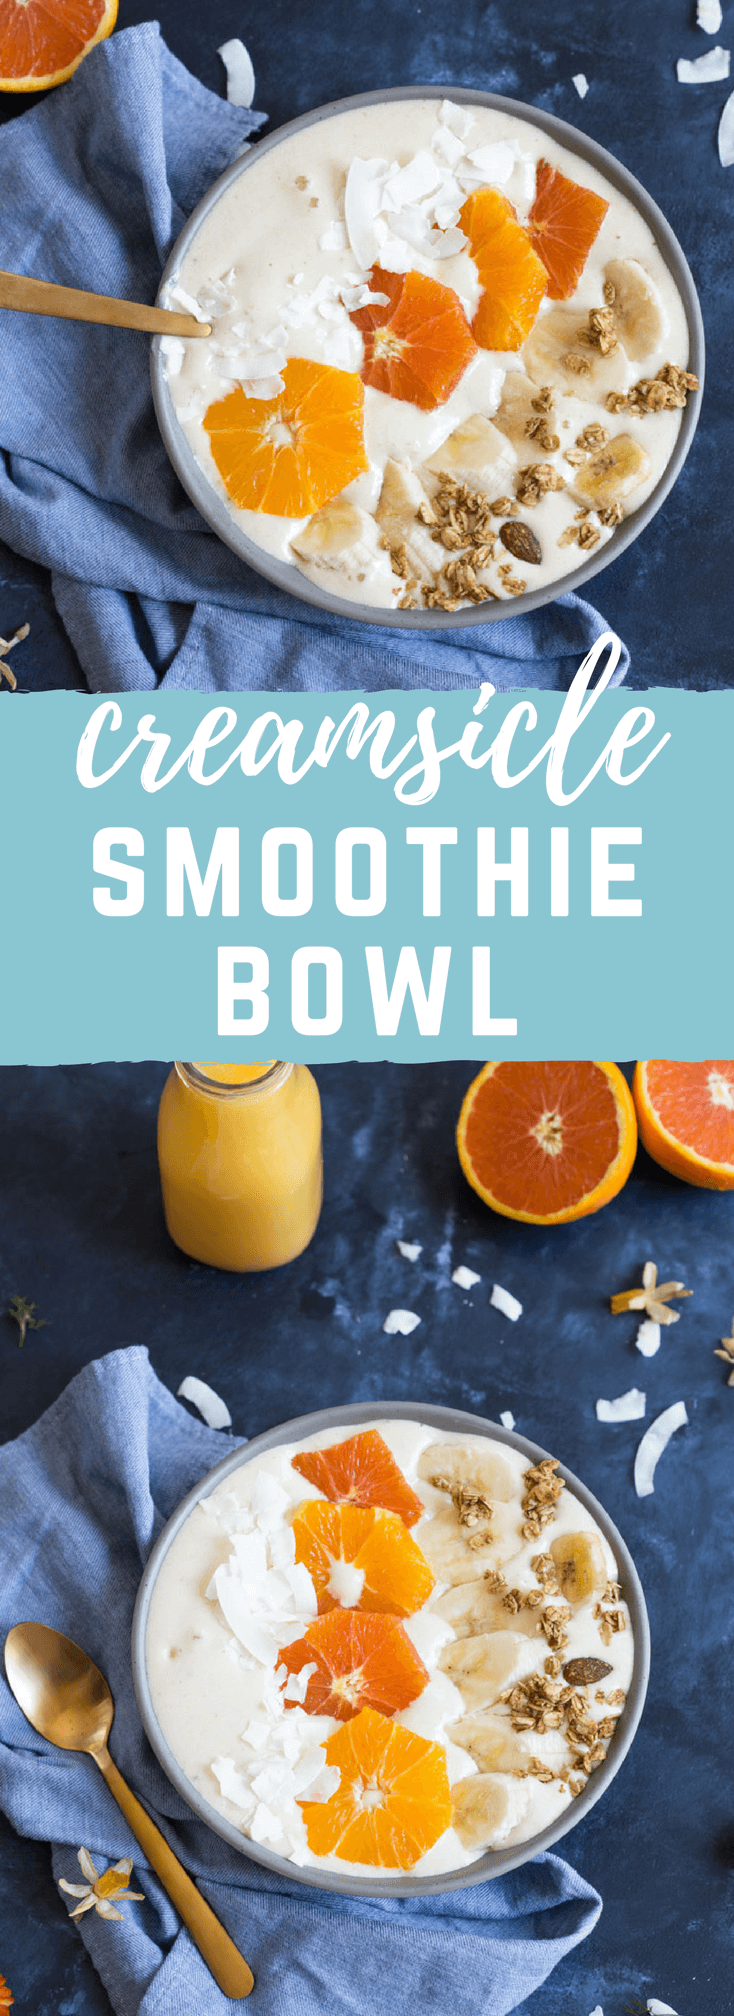 Orange Creamsicle Smoothie Bowl! Creamy, dreamy and everything you want in a smoothie that you can spoon. I love spooning my smoothies! Spooning srcset=